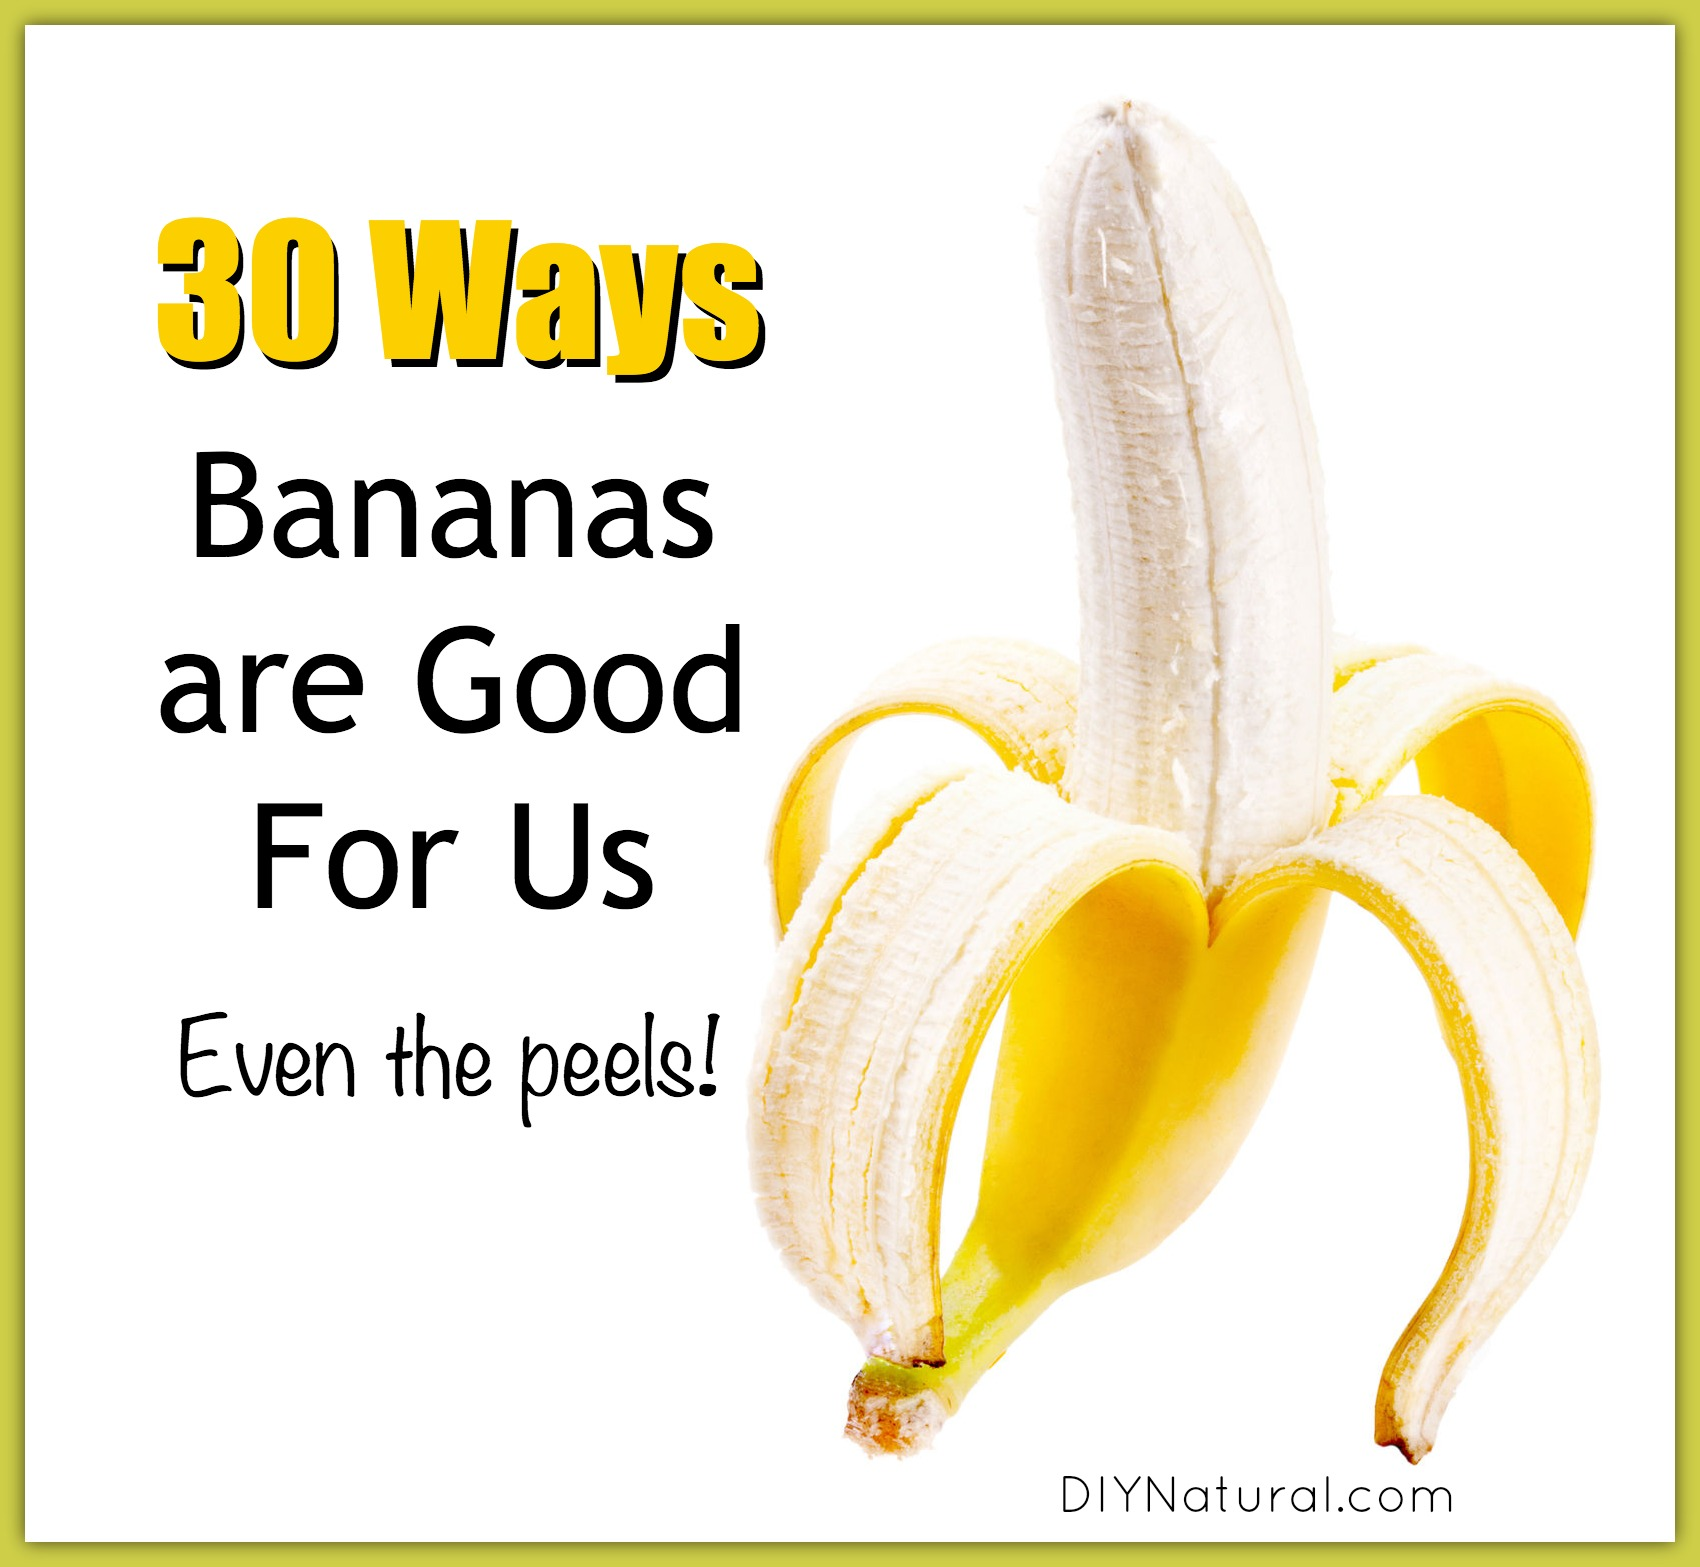 Are Bananas Good For You Yes 30 Benefits of Bananas